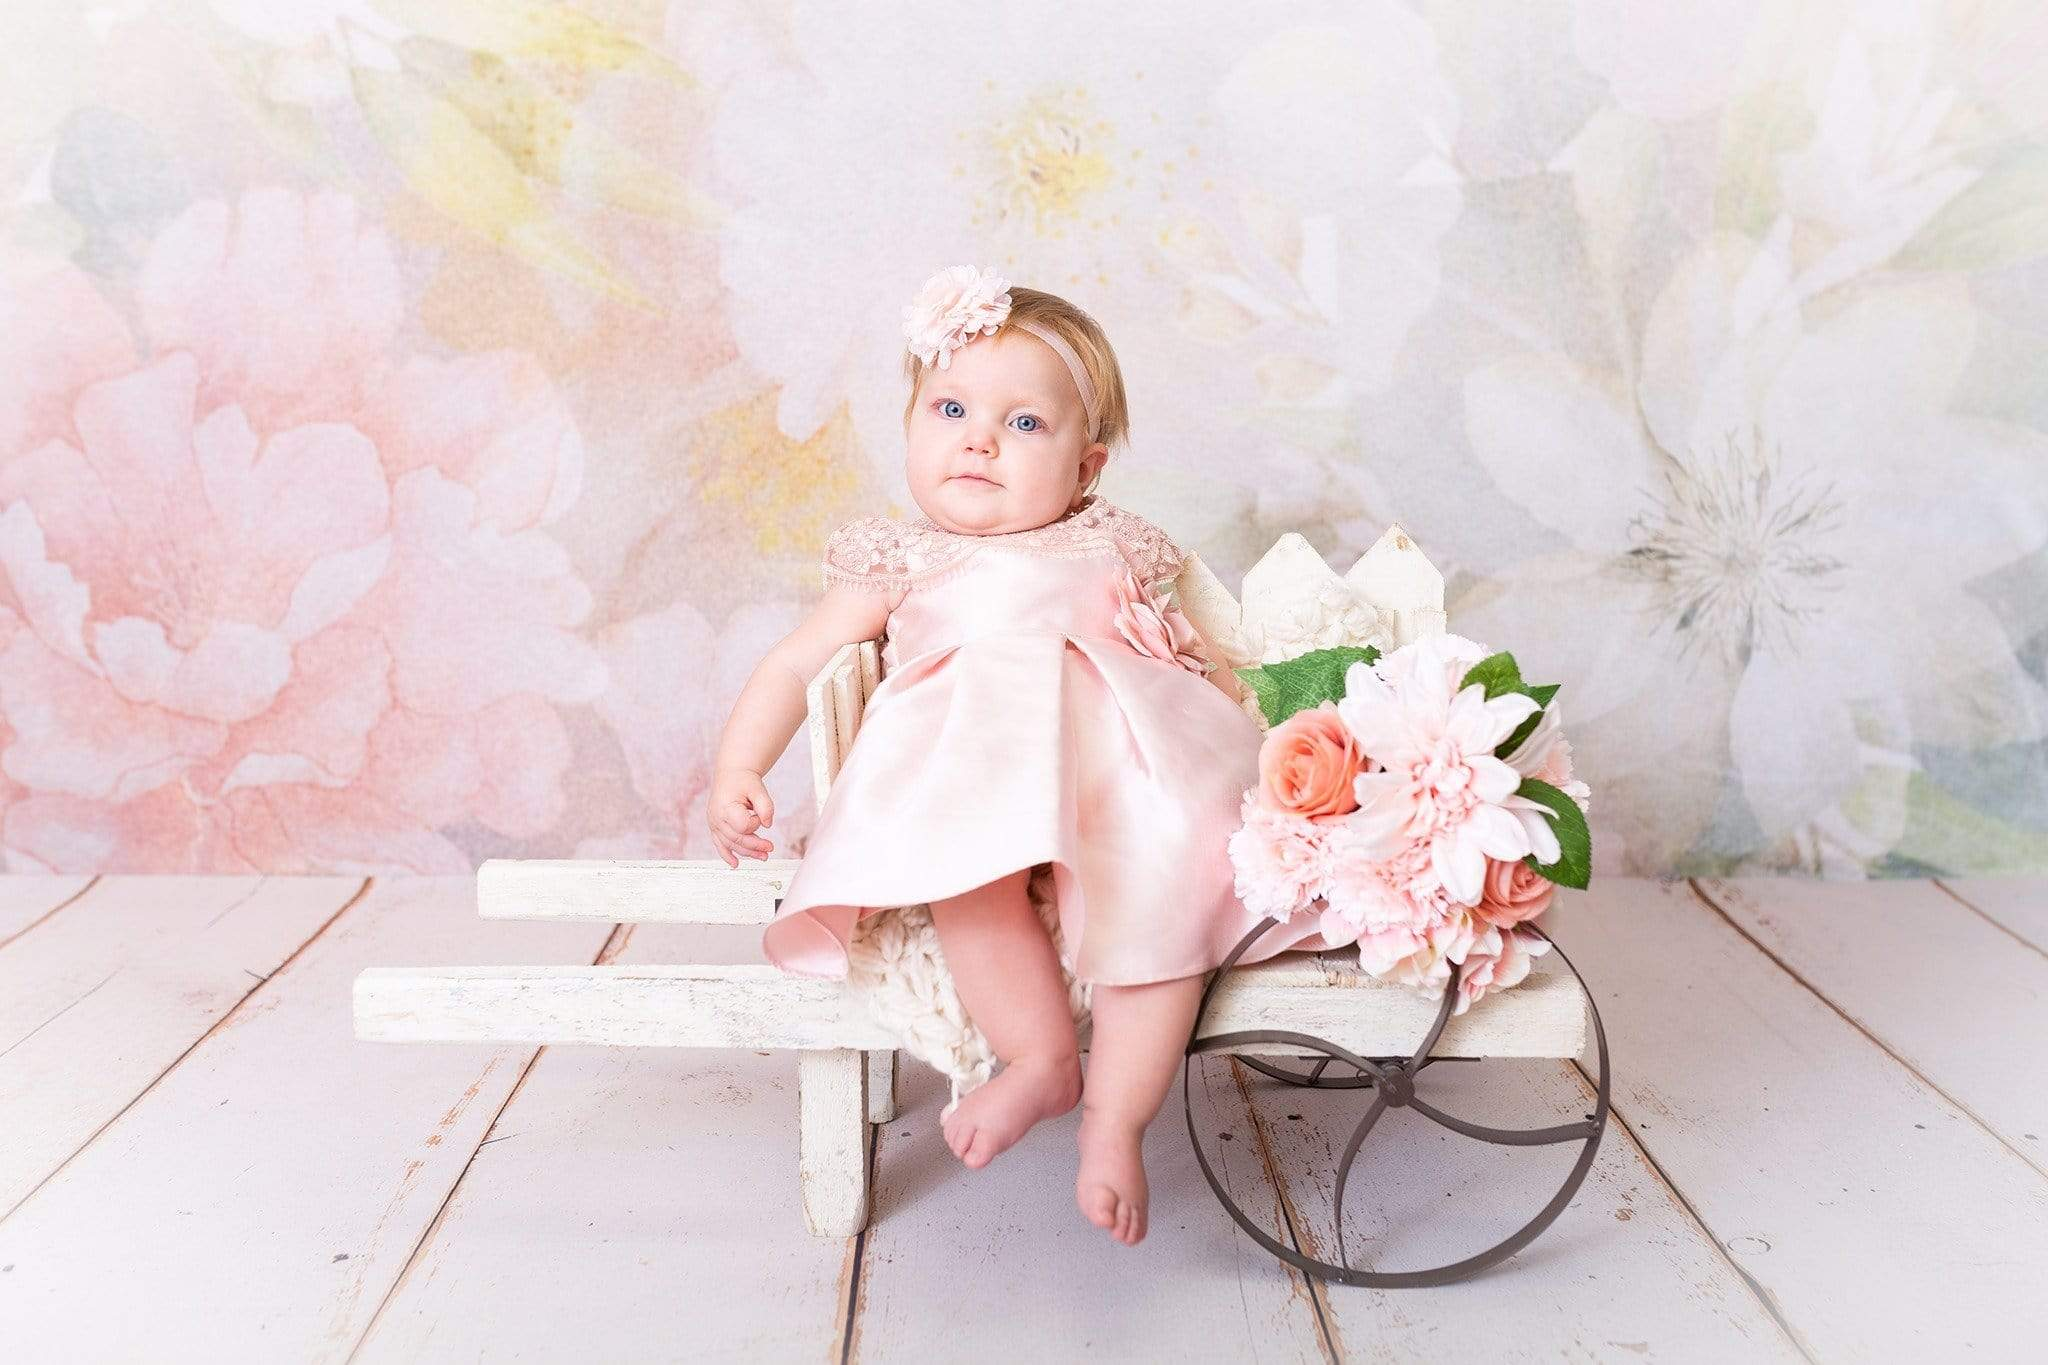 Load image into Gallery viewer, Katebackdrop£ºKate Flowers Pastel Florals Backdrop for Photography Designed by Amanda Moffatt